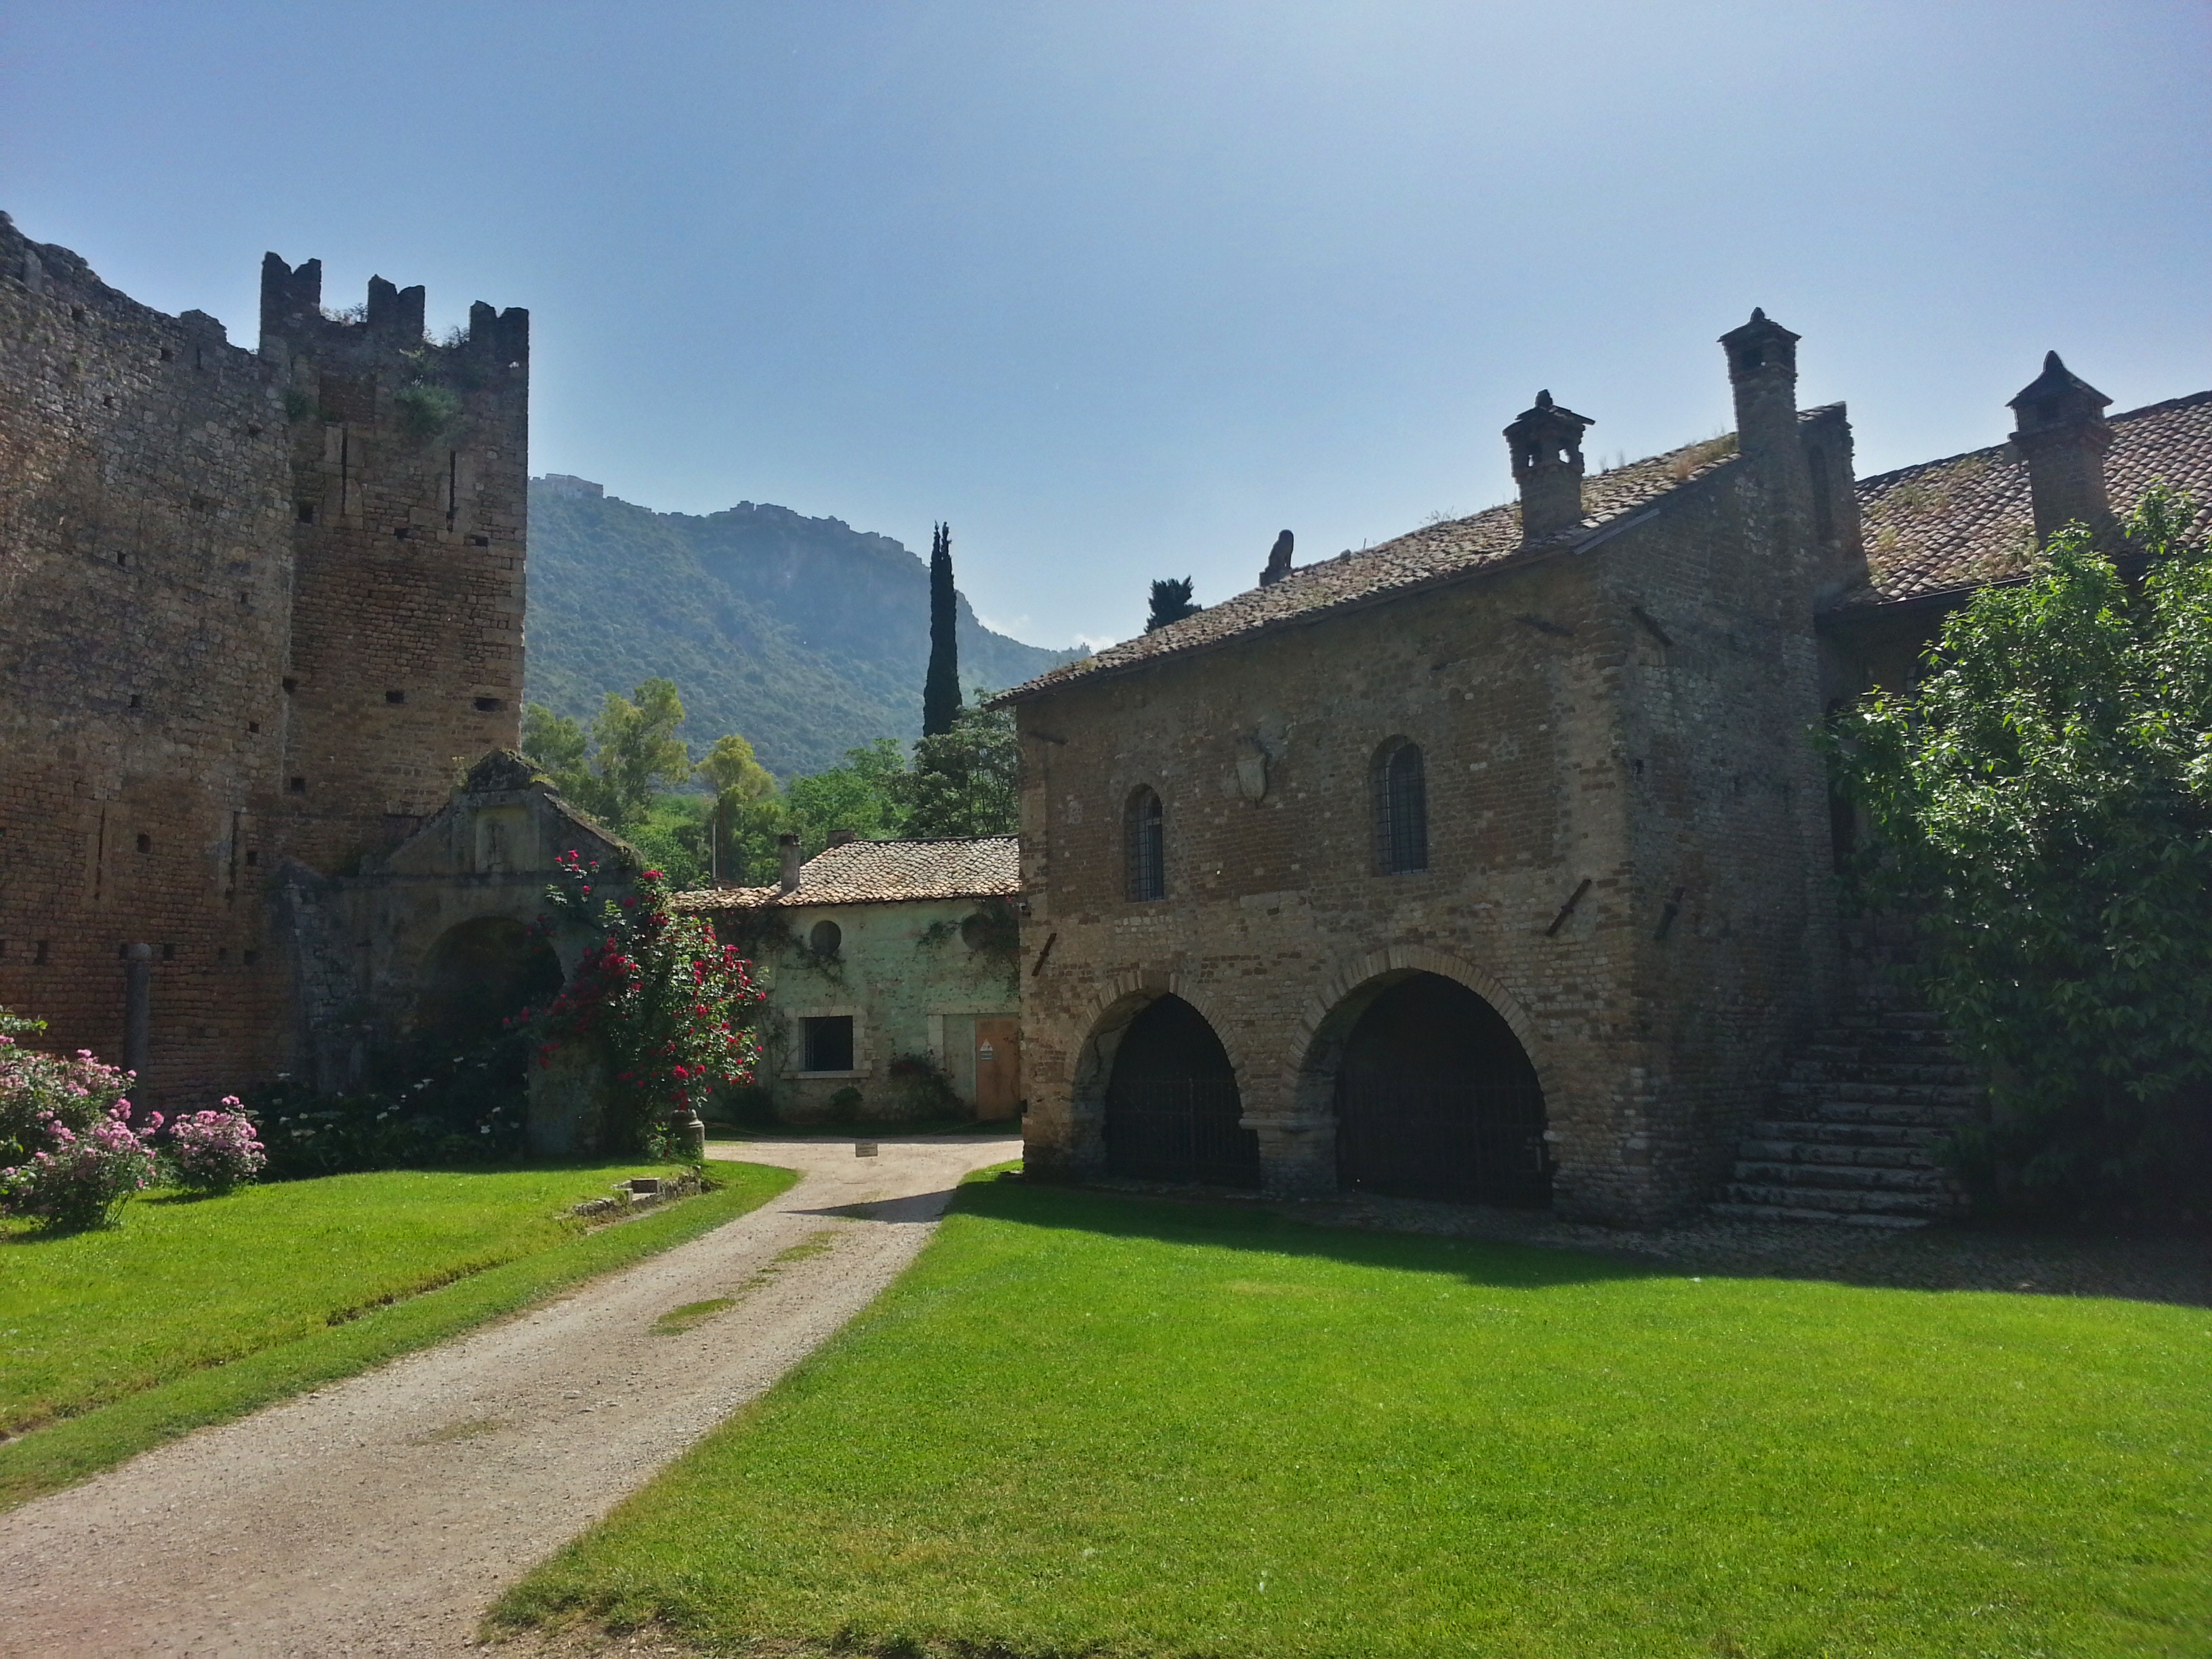 Day trips from Rome: How to get to the Gardens of Ninfa near Rome, official opening times for the Gardens of Ninfa 2018, plus 2018 entry prices for Ninfa.